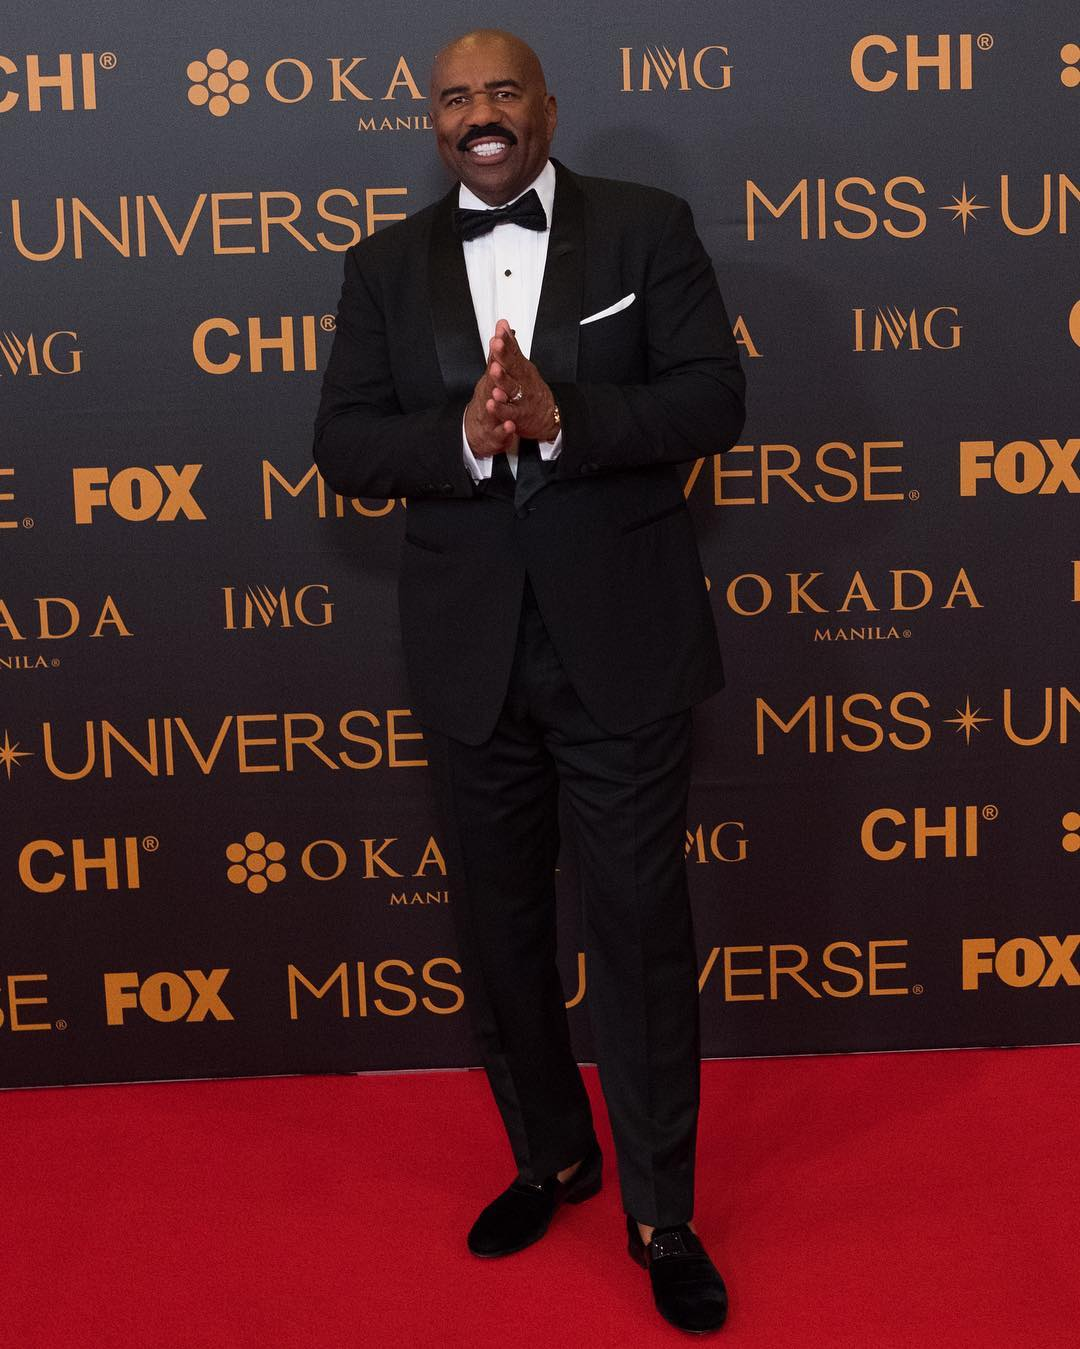 People hate you: Gorgeous Miss Universe babe blasts Steve Harvey over gaffe